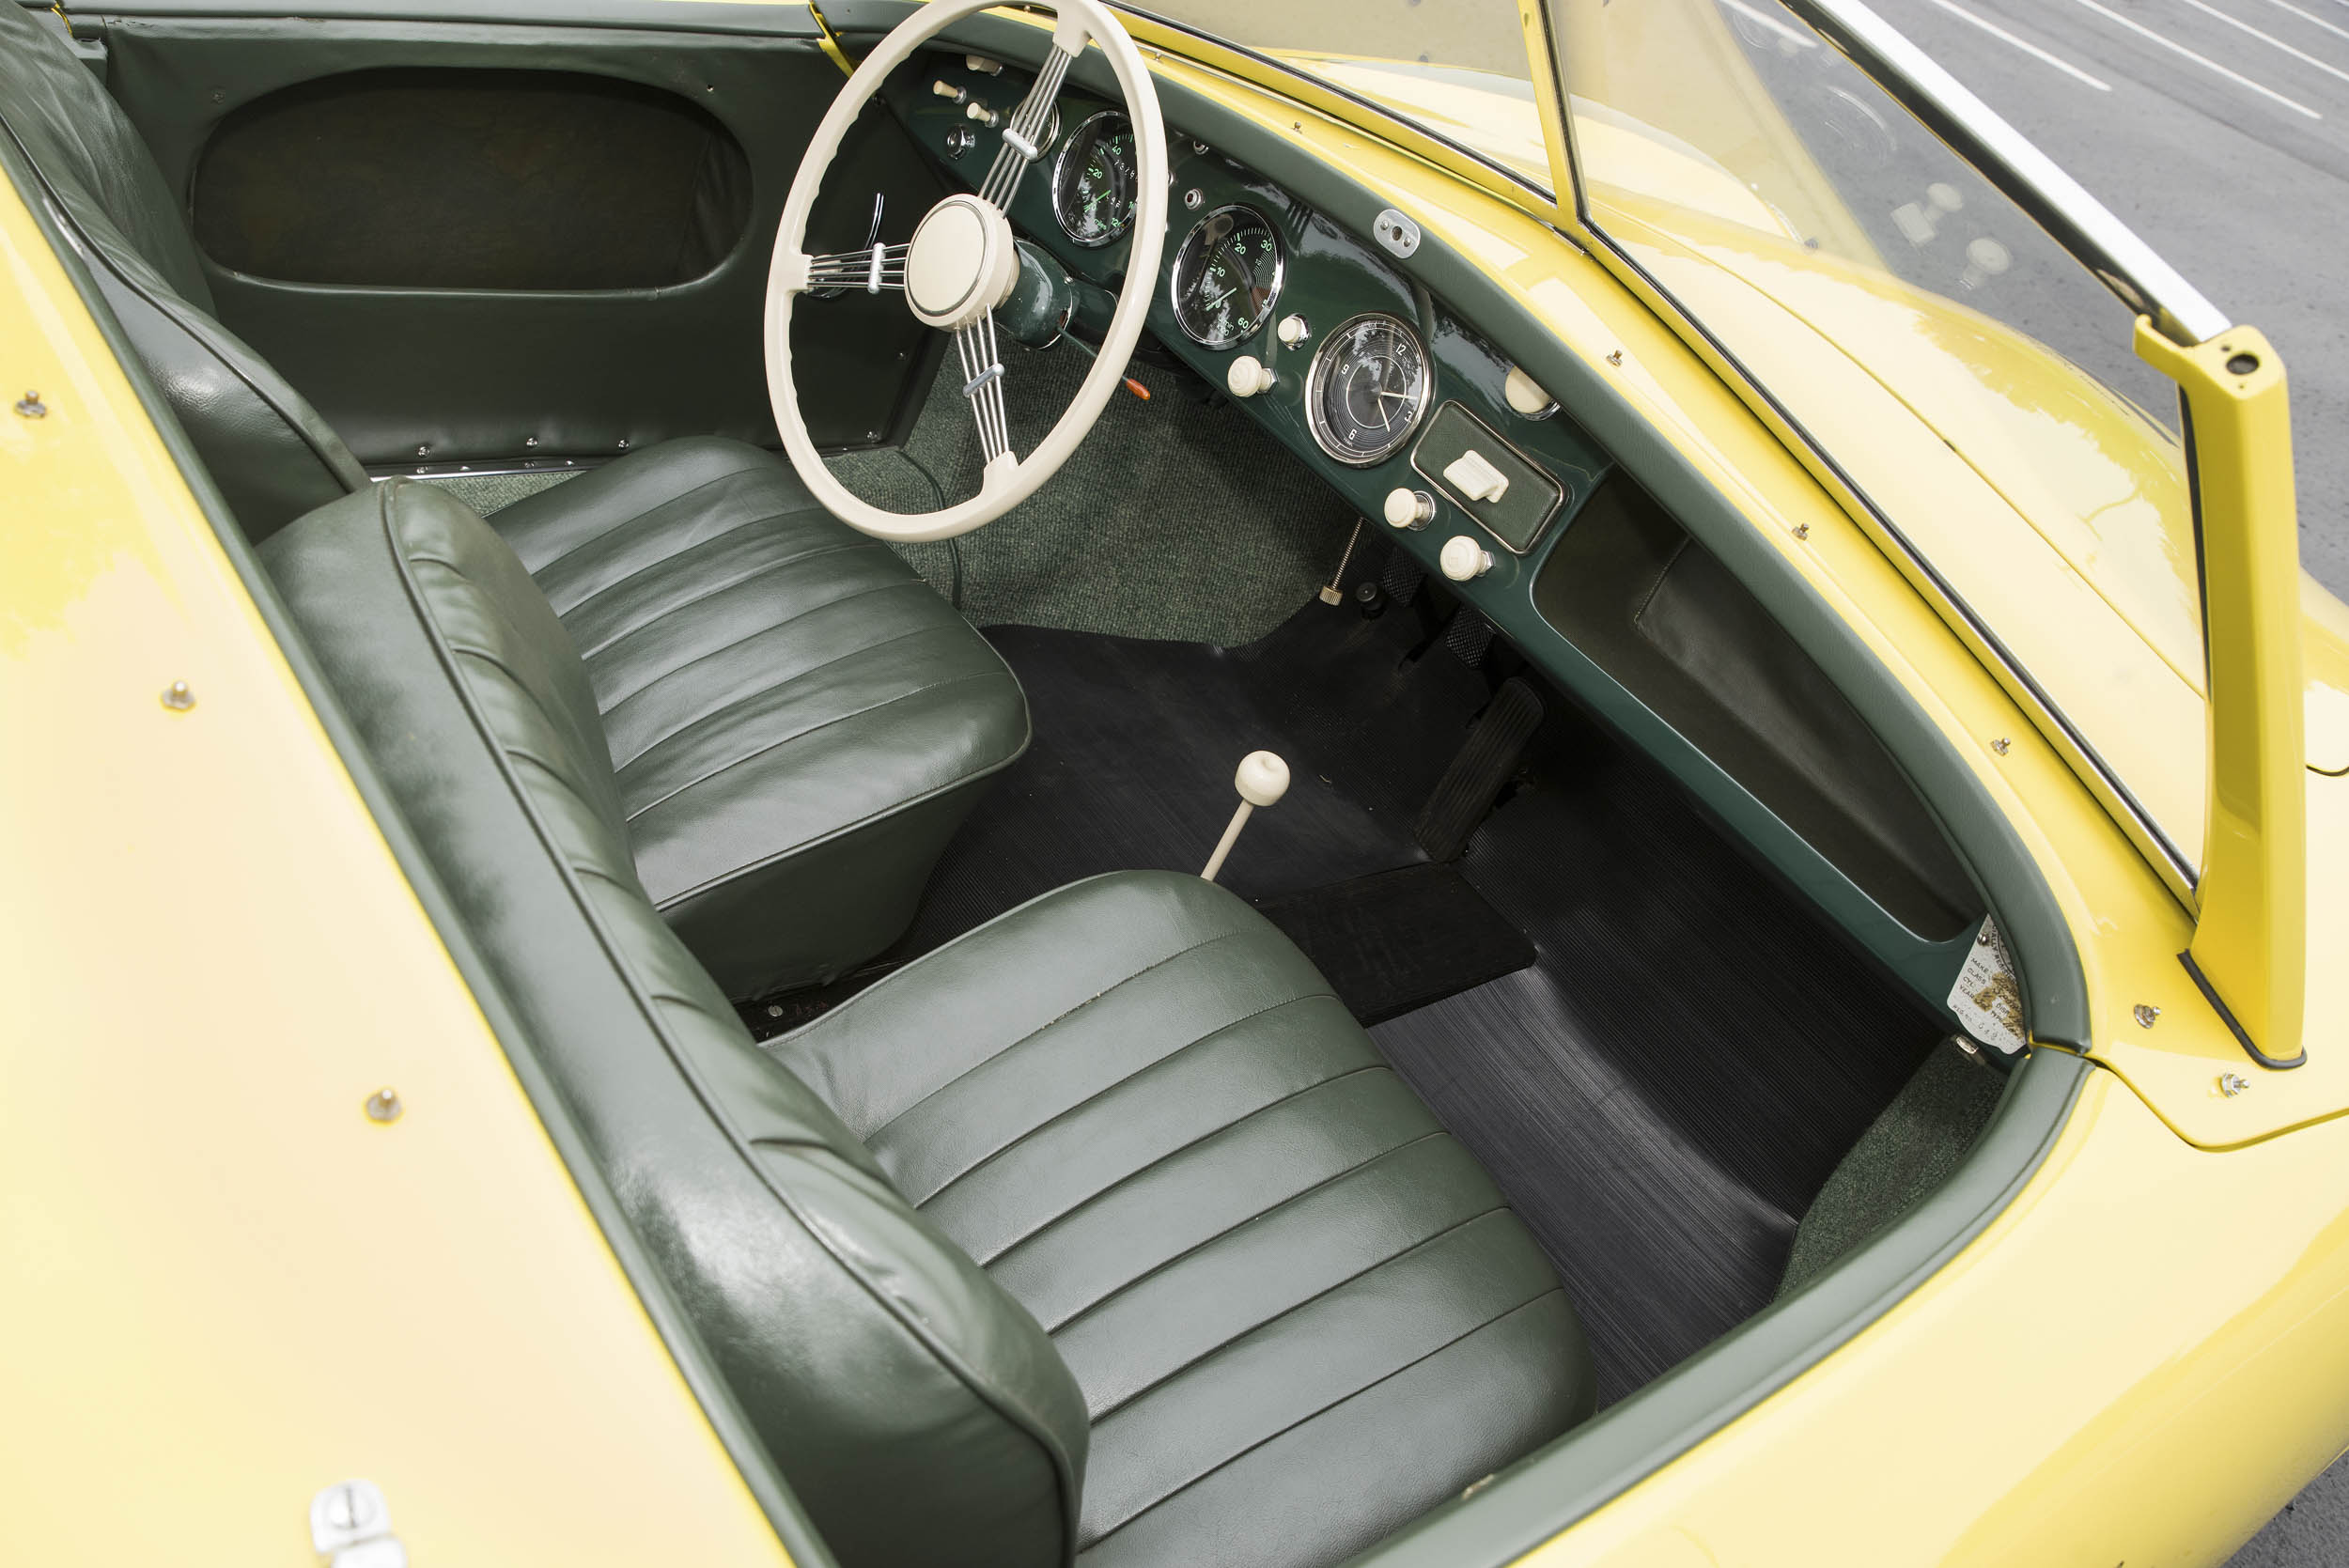 The car has been gently restored to as close to original condition as possible.